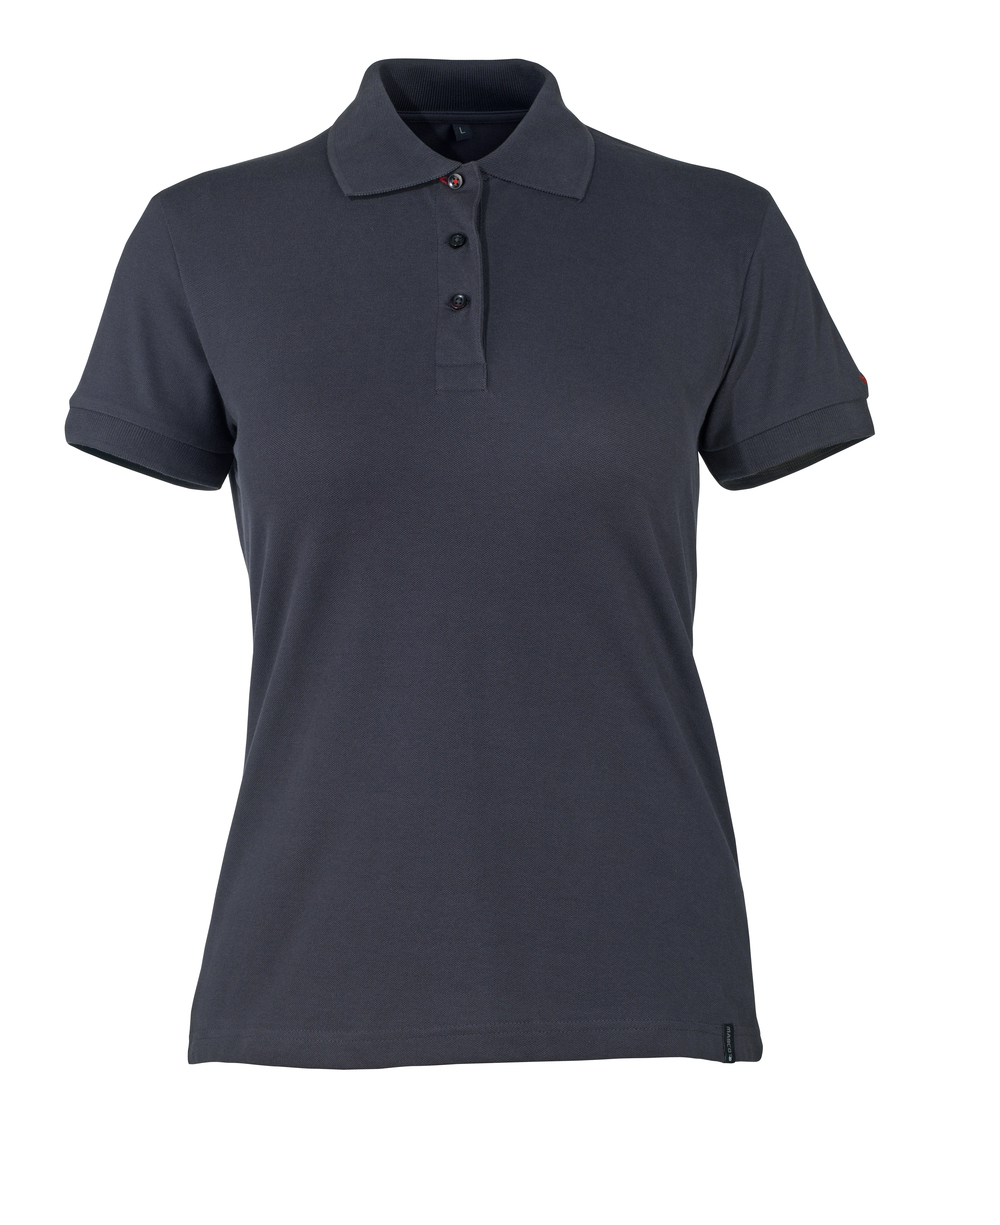 50363-861-010 Polo - blu navy scuro